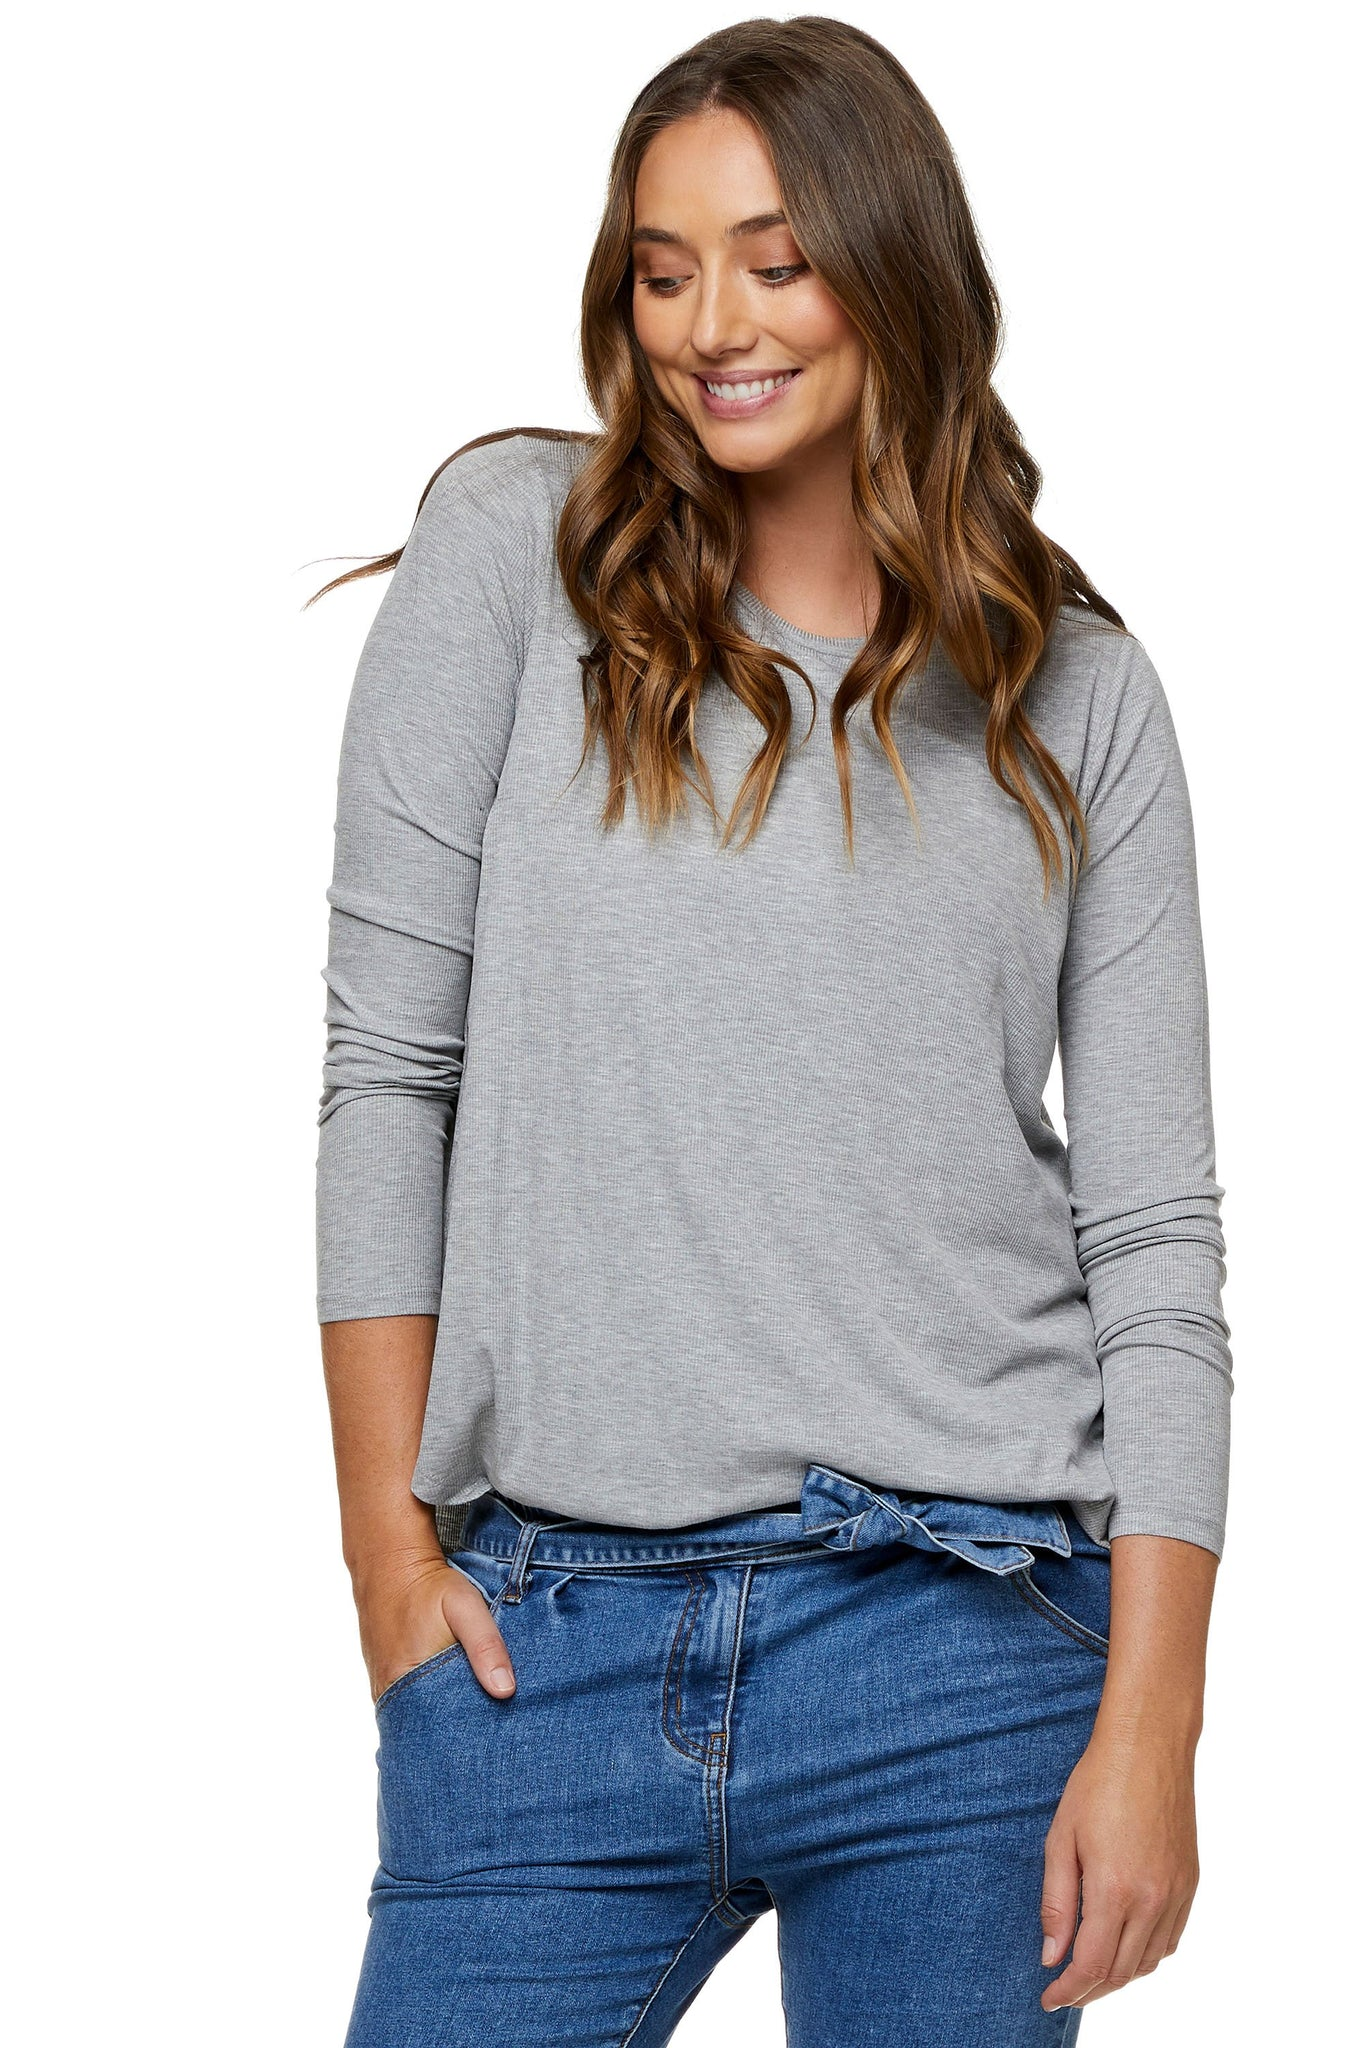 Grey nursing top - Maternity long sleeve top 10